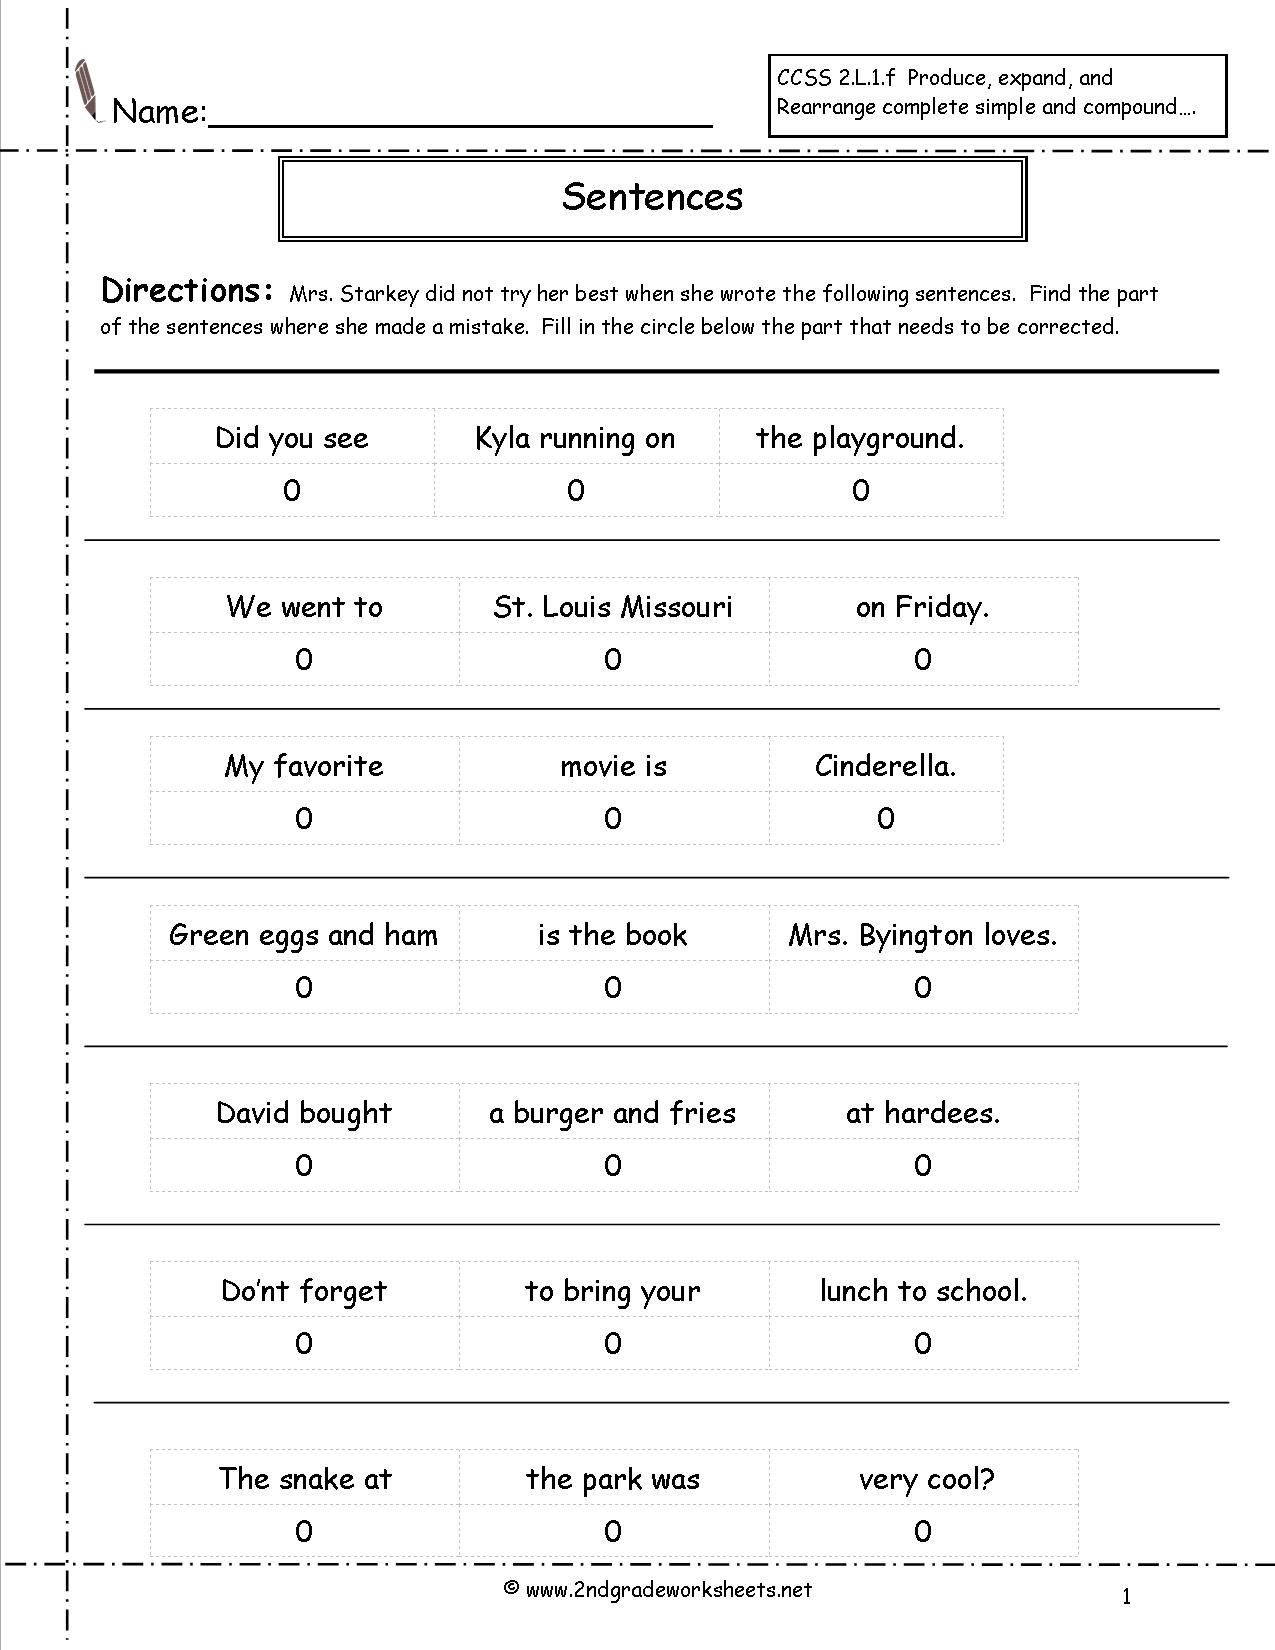 Topic Sentence Worksheets 2nd Grade Correct the Sentence Worksheet